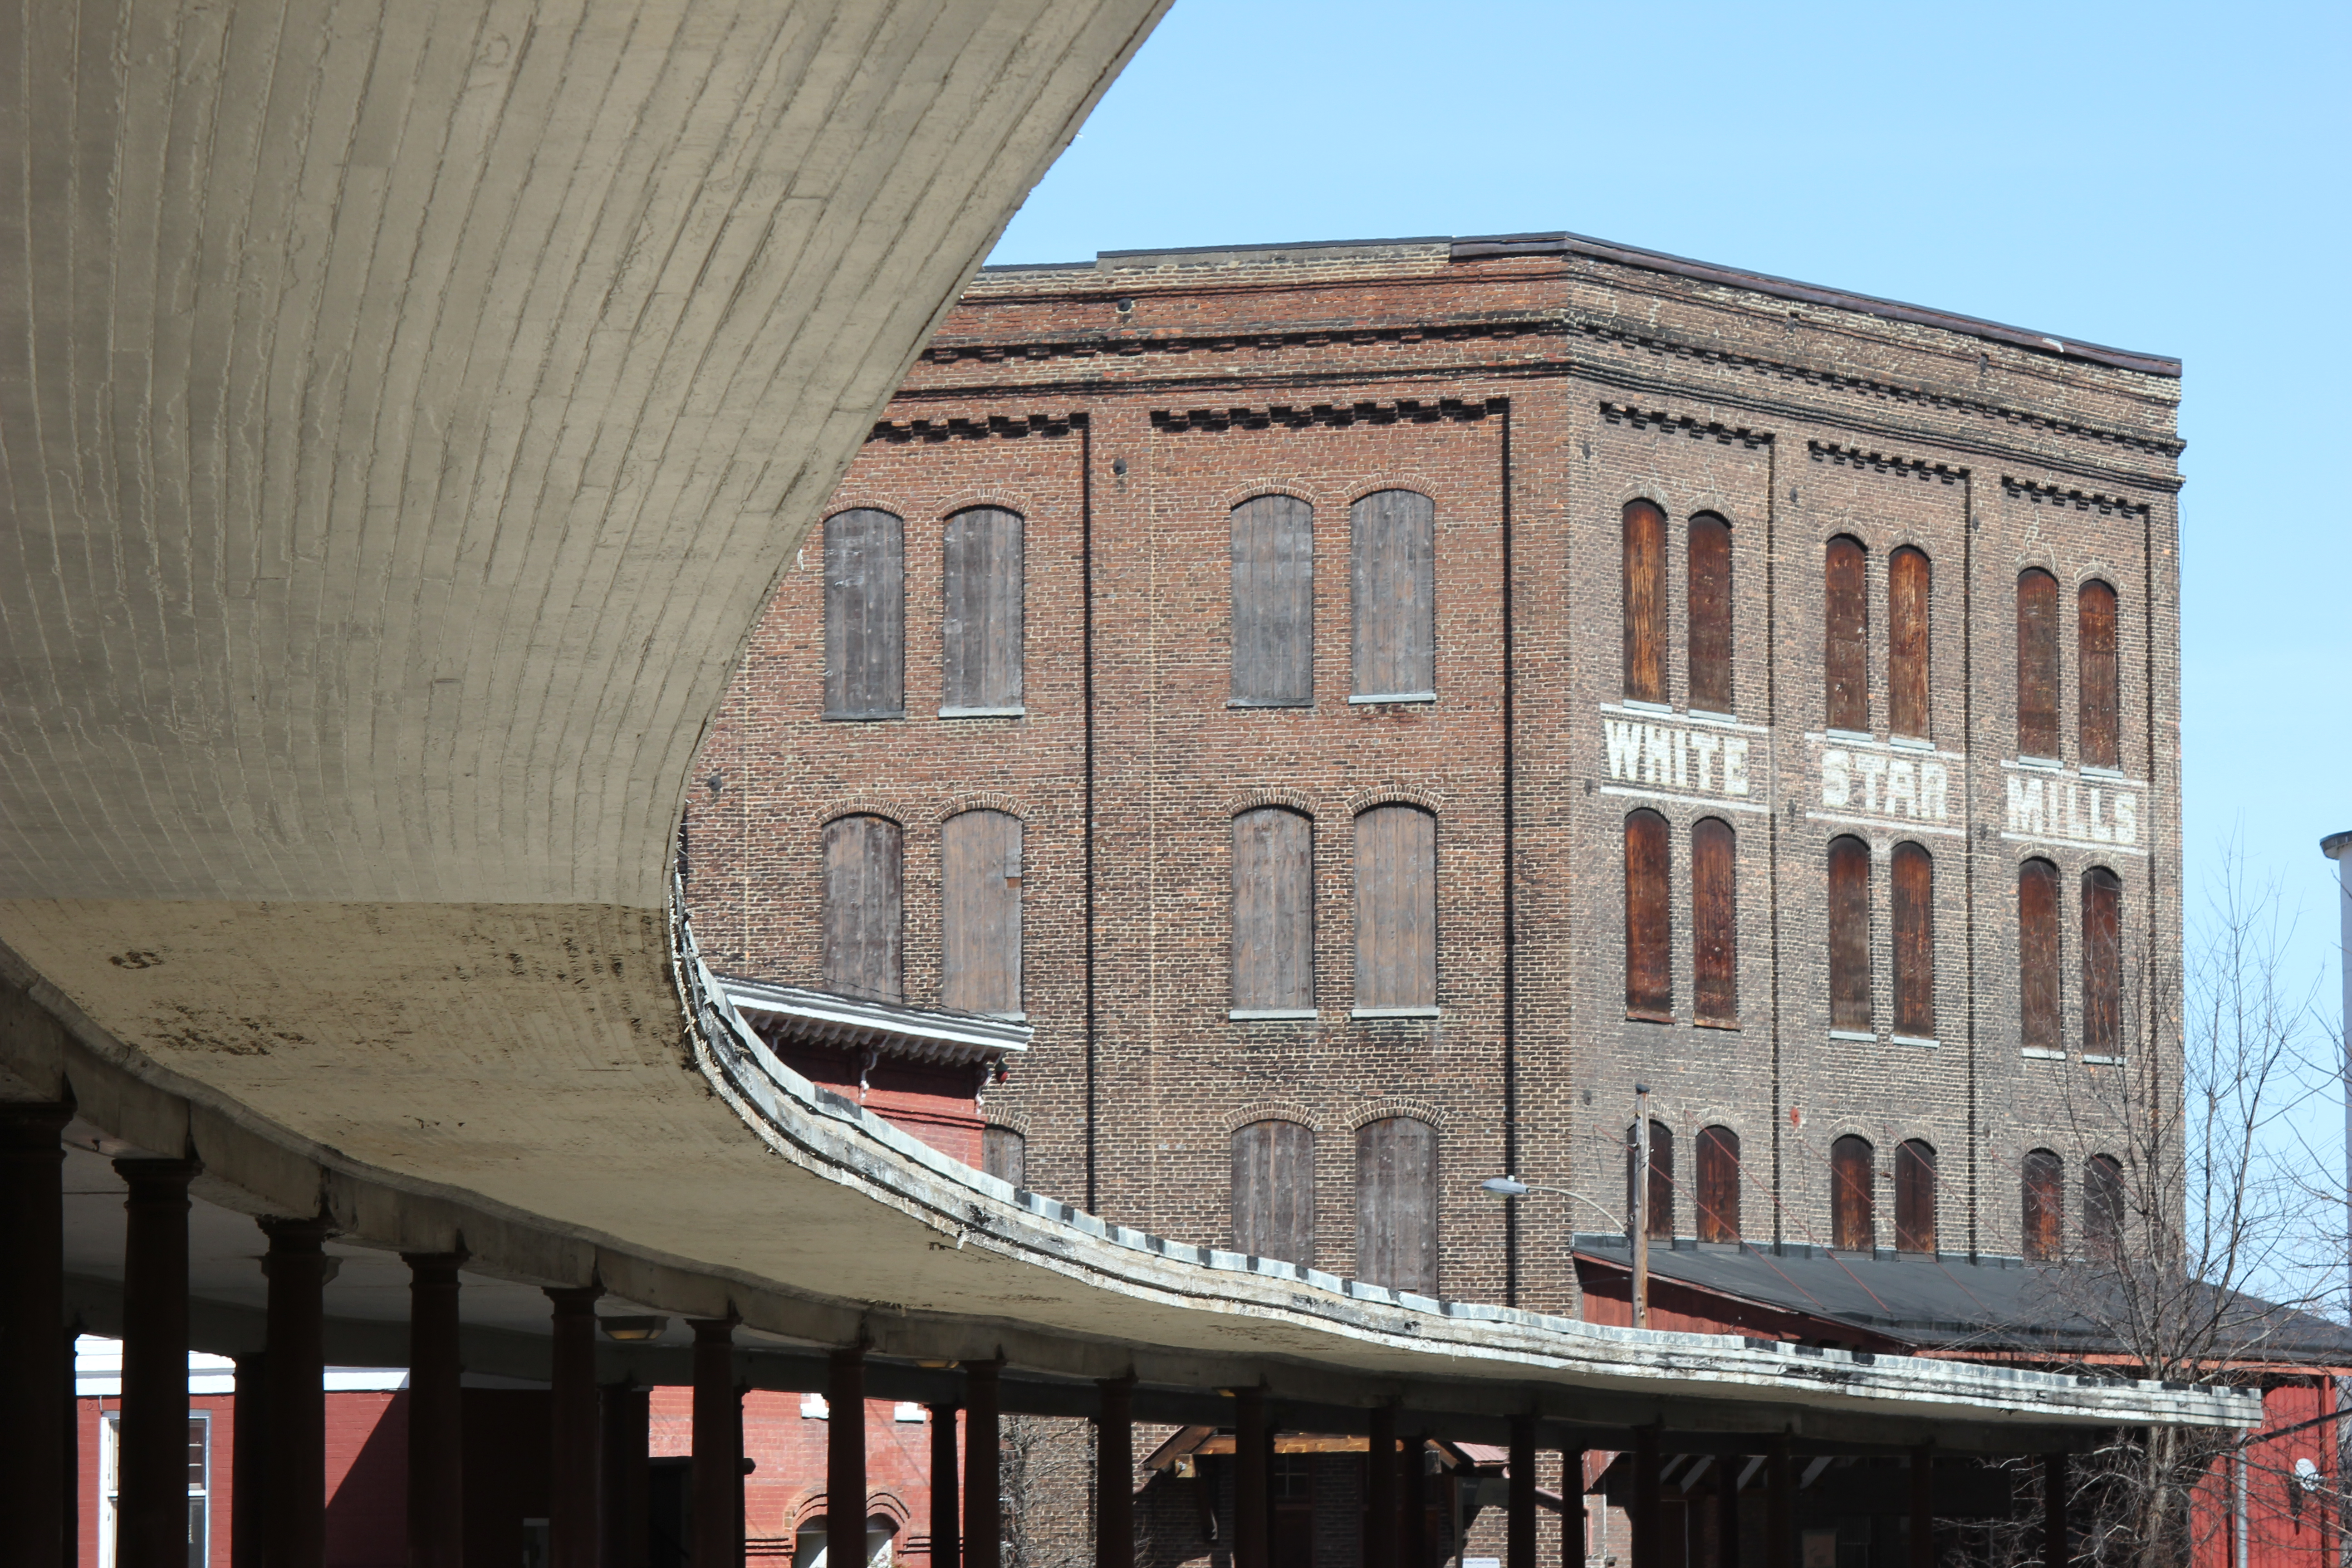 A large former mill in the background and the roof of the train station in the foreground.